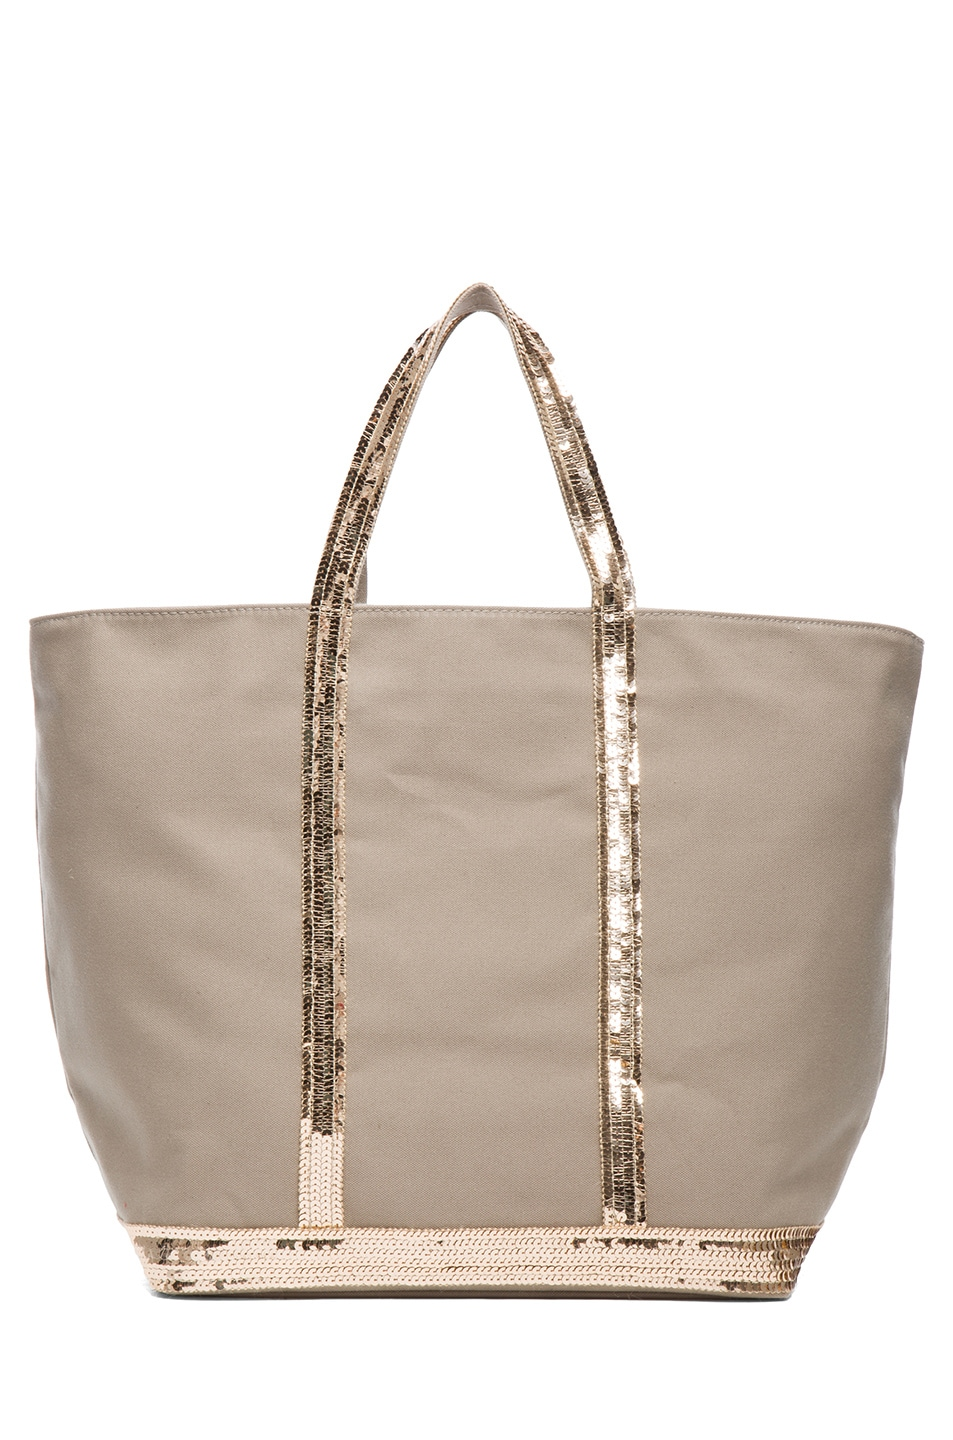 Image 1 of Vanessa Bruno Toile De Coton Tote in Savane